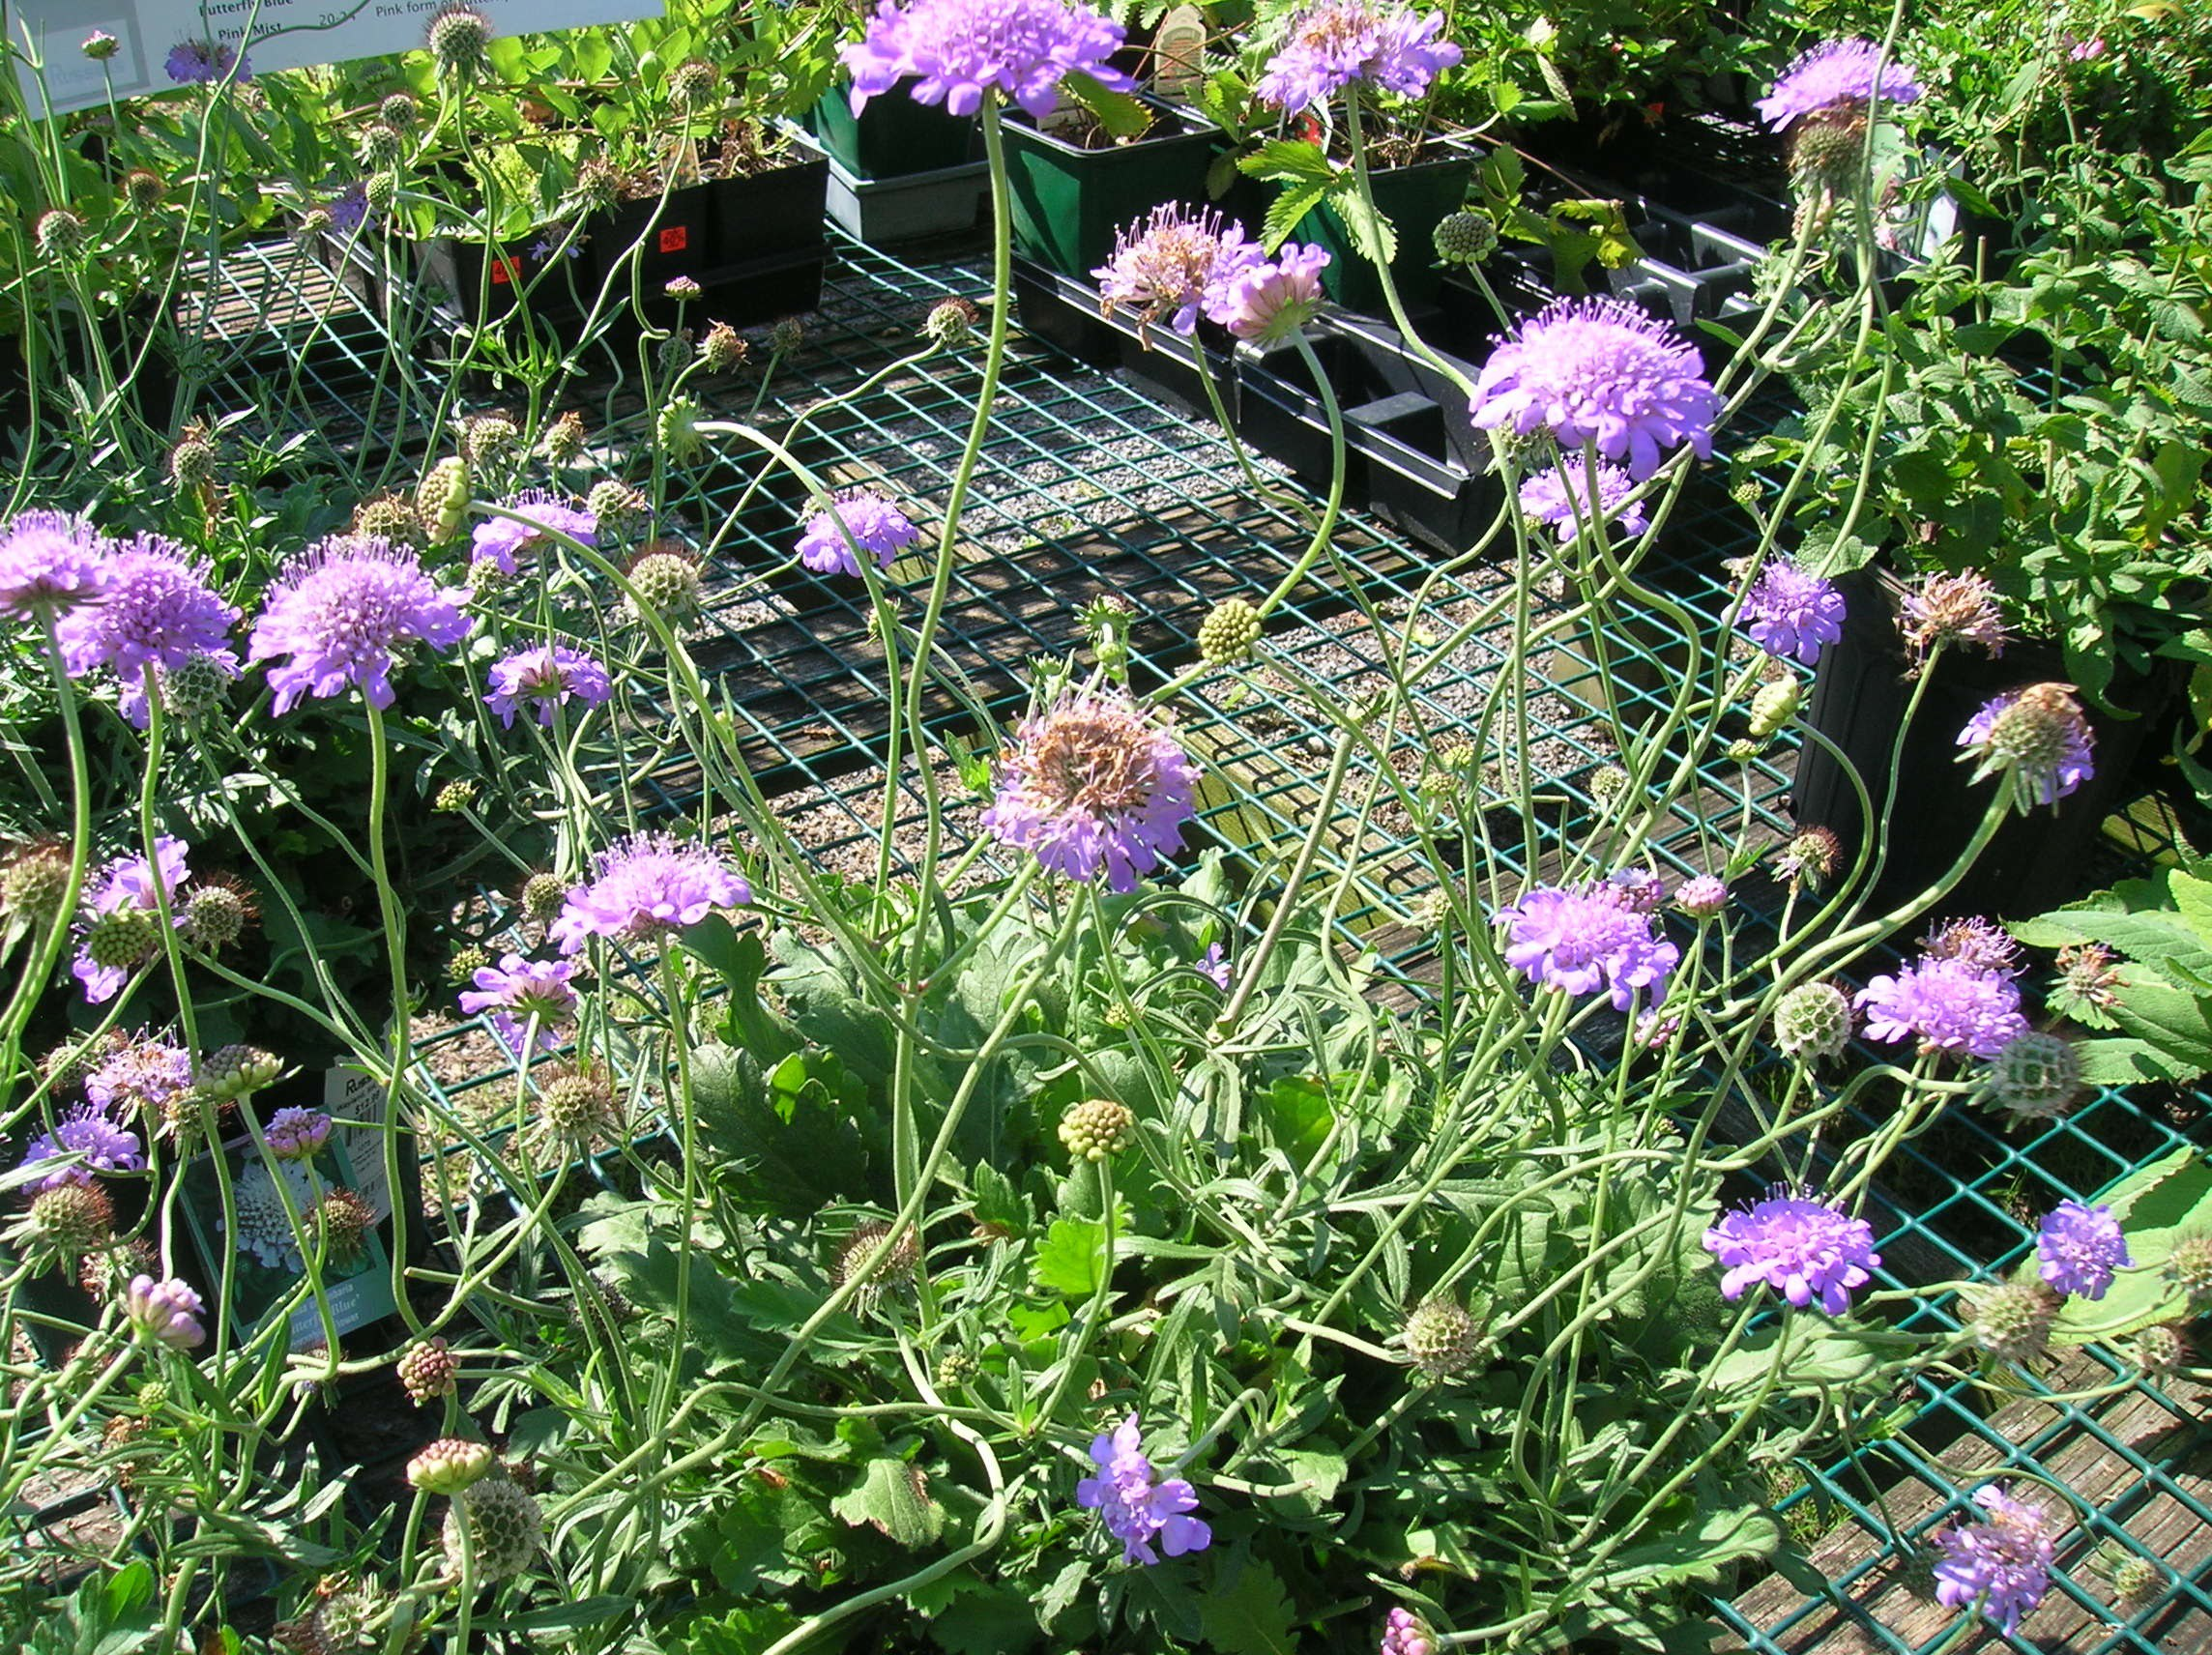 How To Grow Scabiosa Grow Scabiosa And Care For This Annual Flower